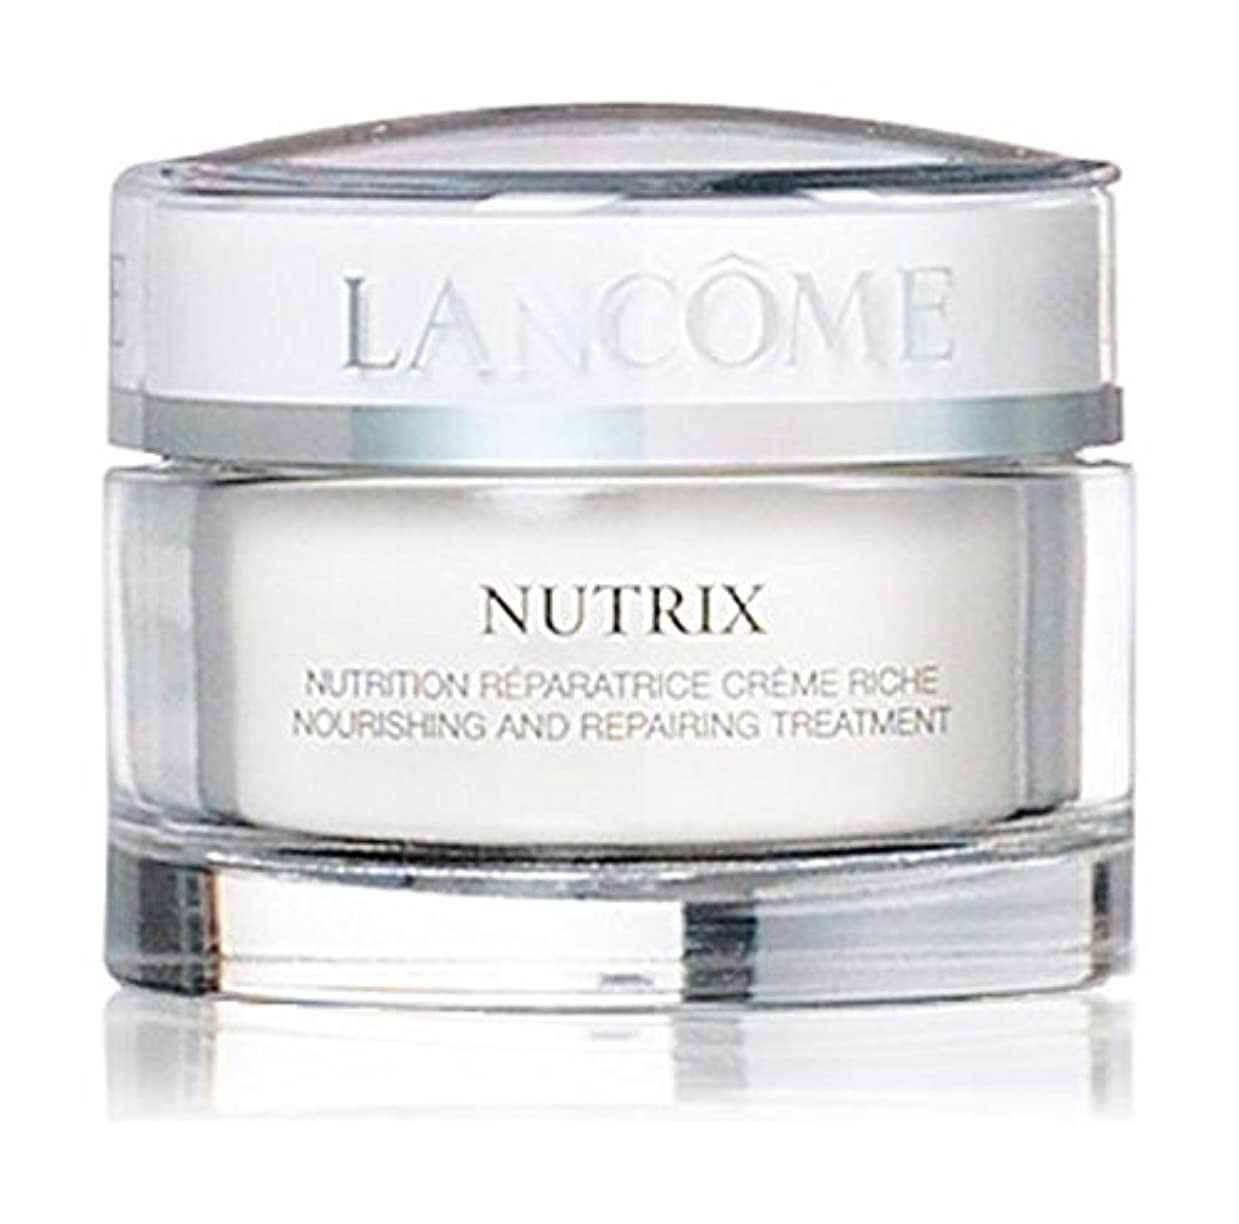 陸軍問い合わせ考えるランコム Nutrix Nourishing And Repairing Treatment Rich Cream - For Very Dry, Sensitive Or Irritated Skin 50ml/1.7oz並行輸入品